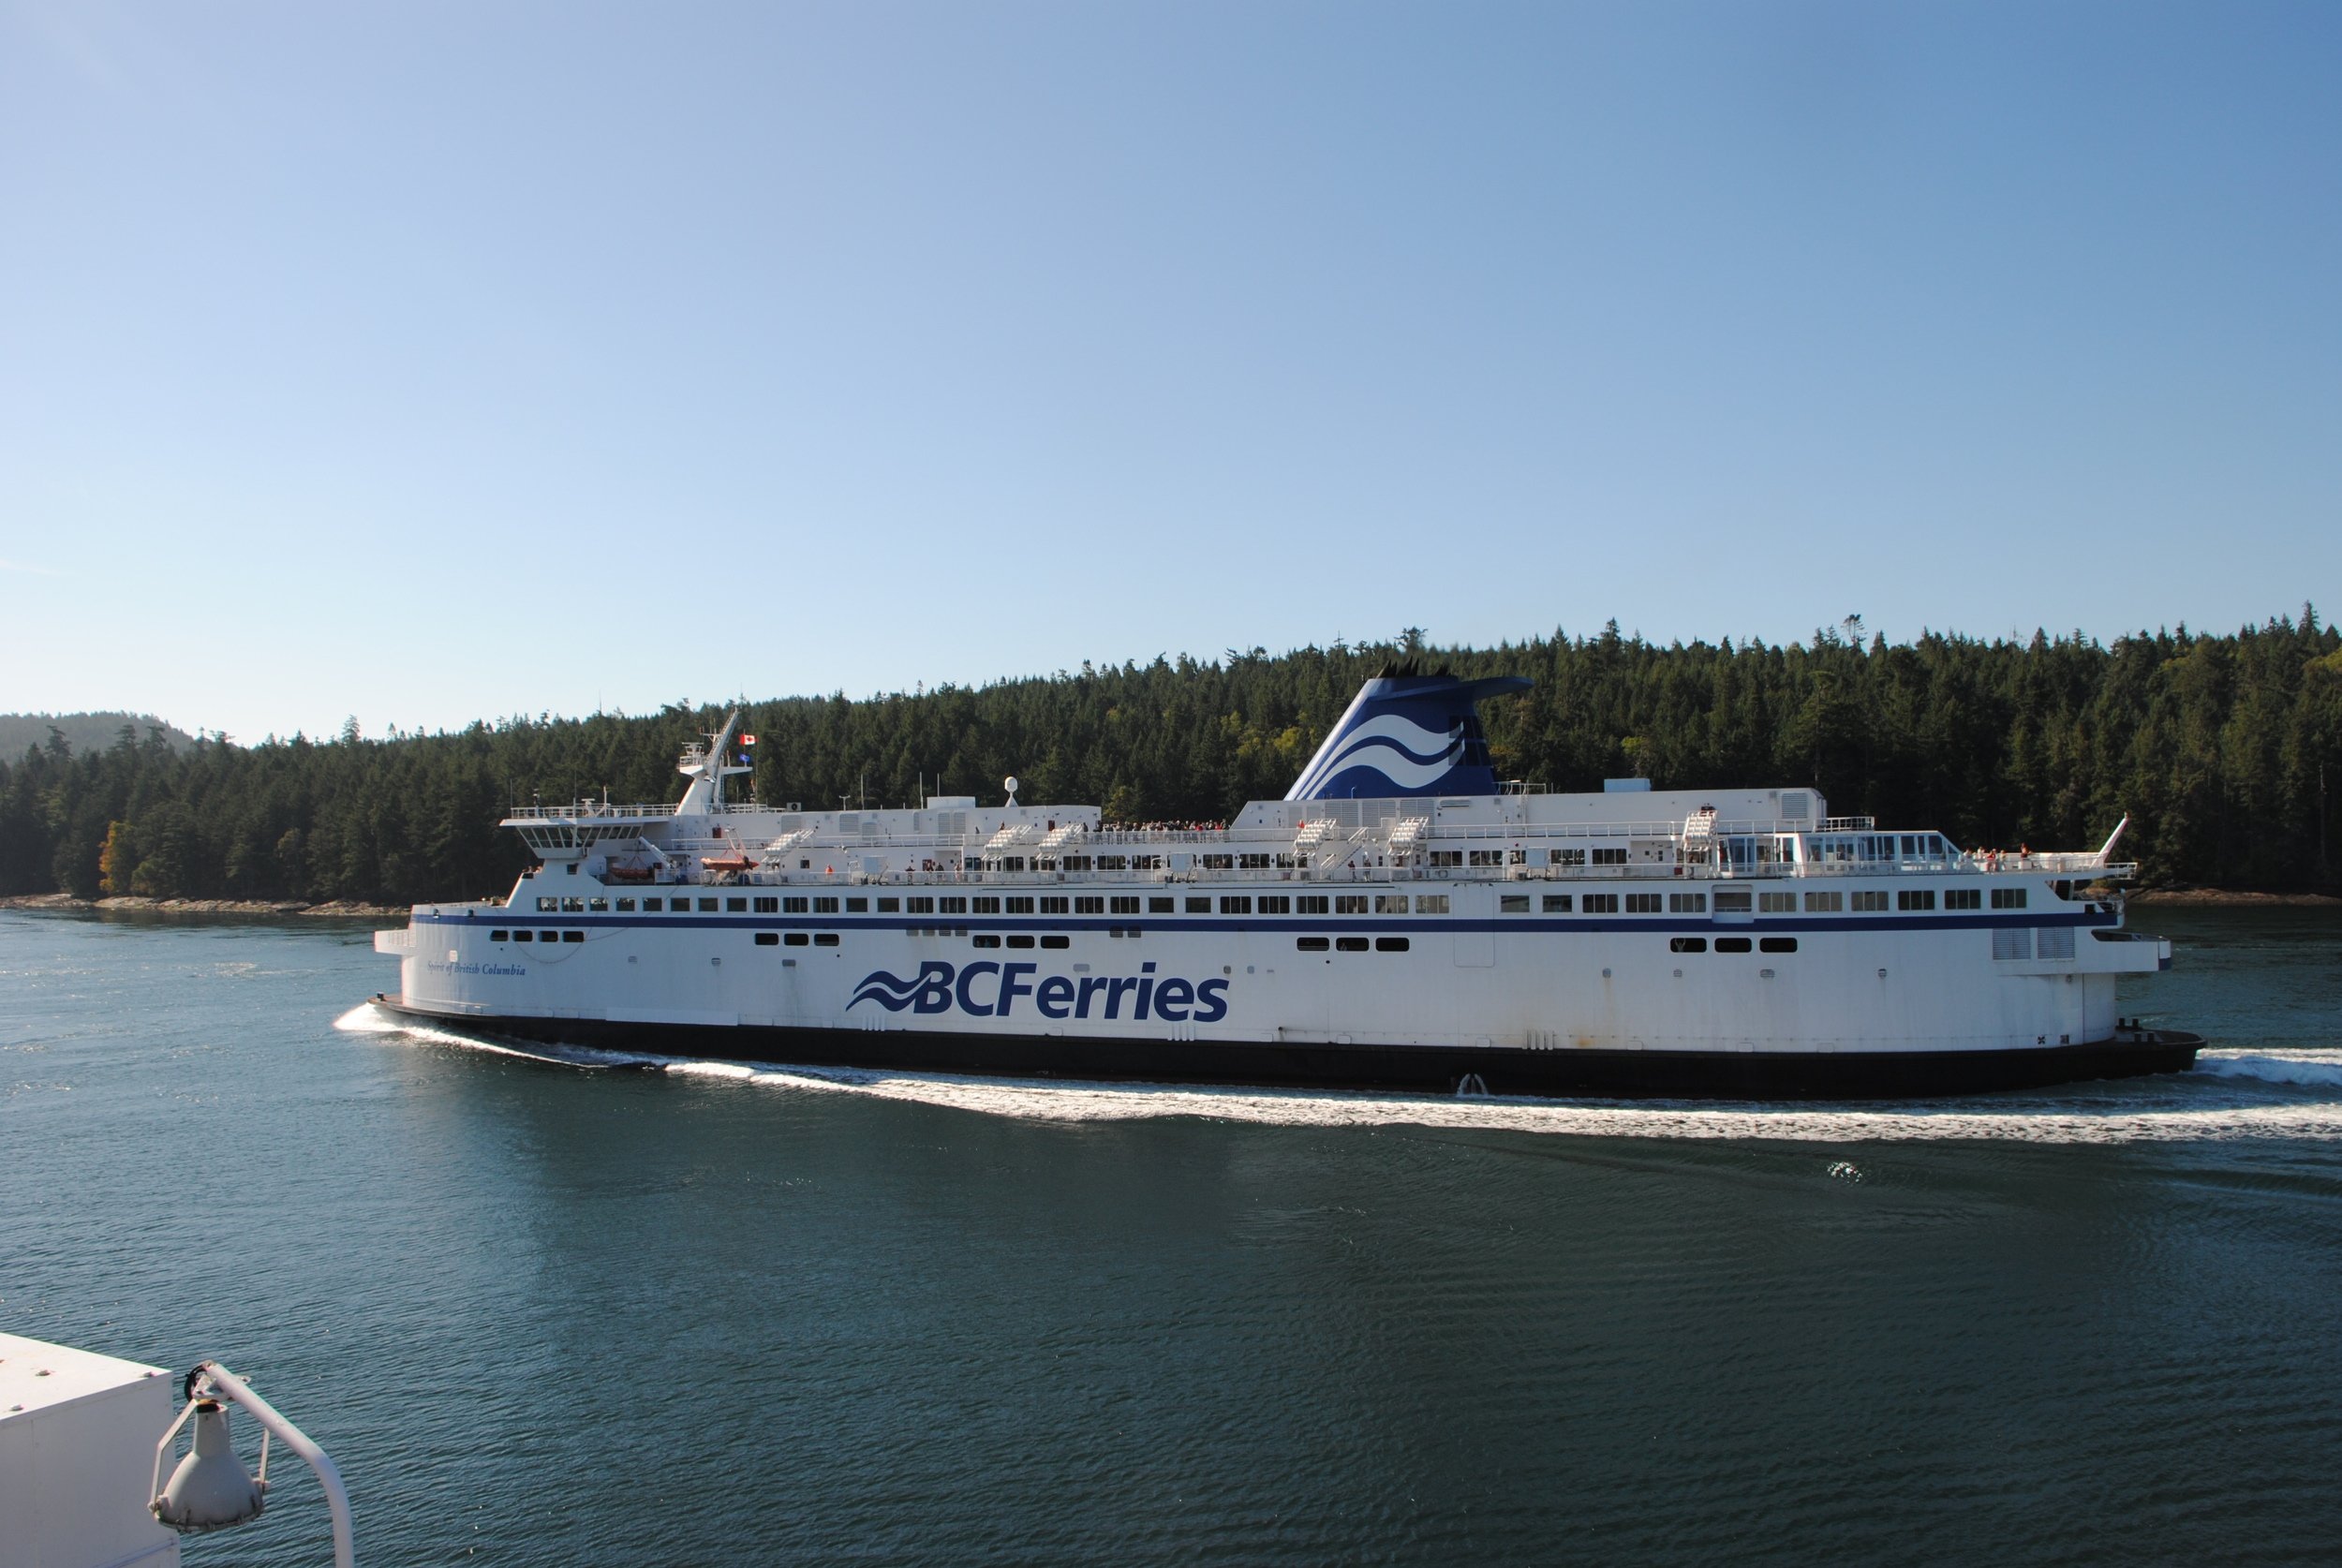 The 500' ferry to Vancouver Island.